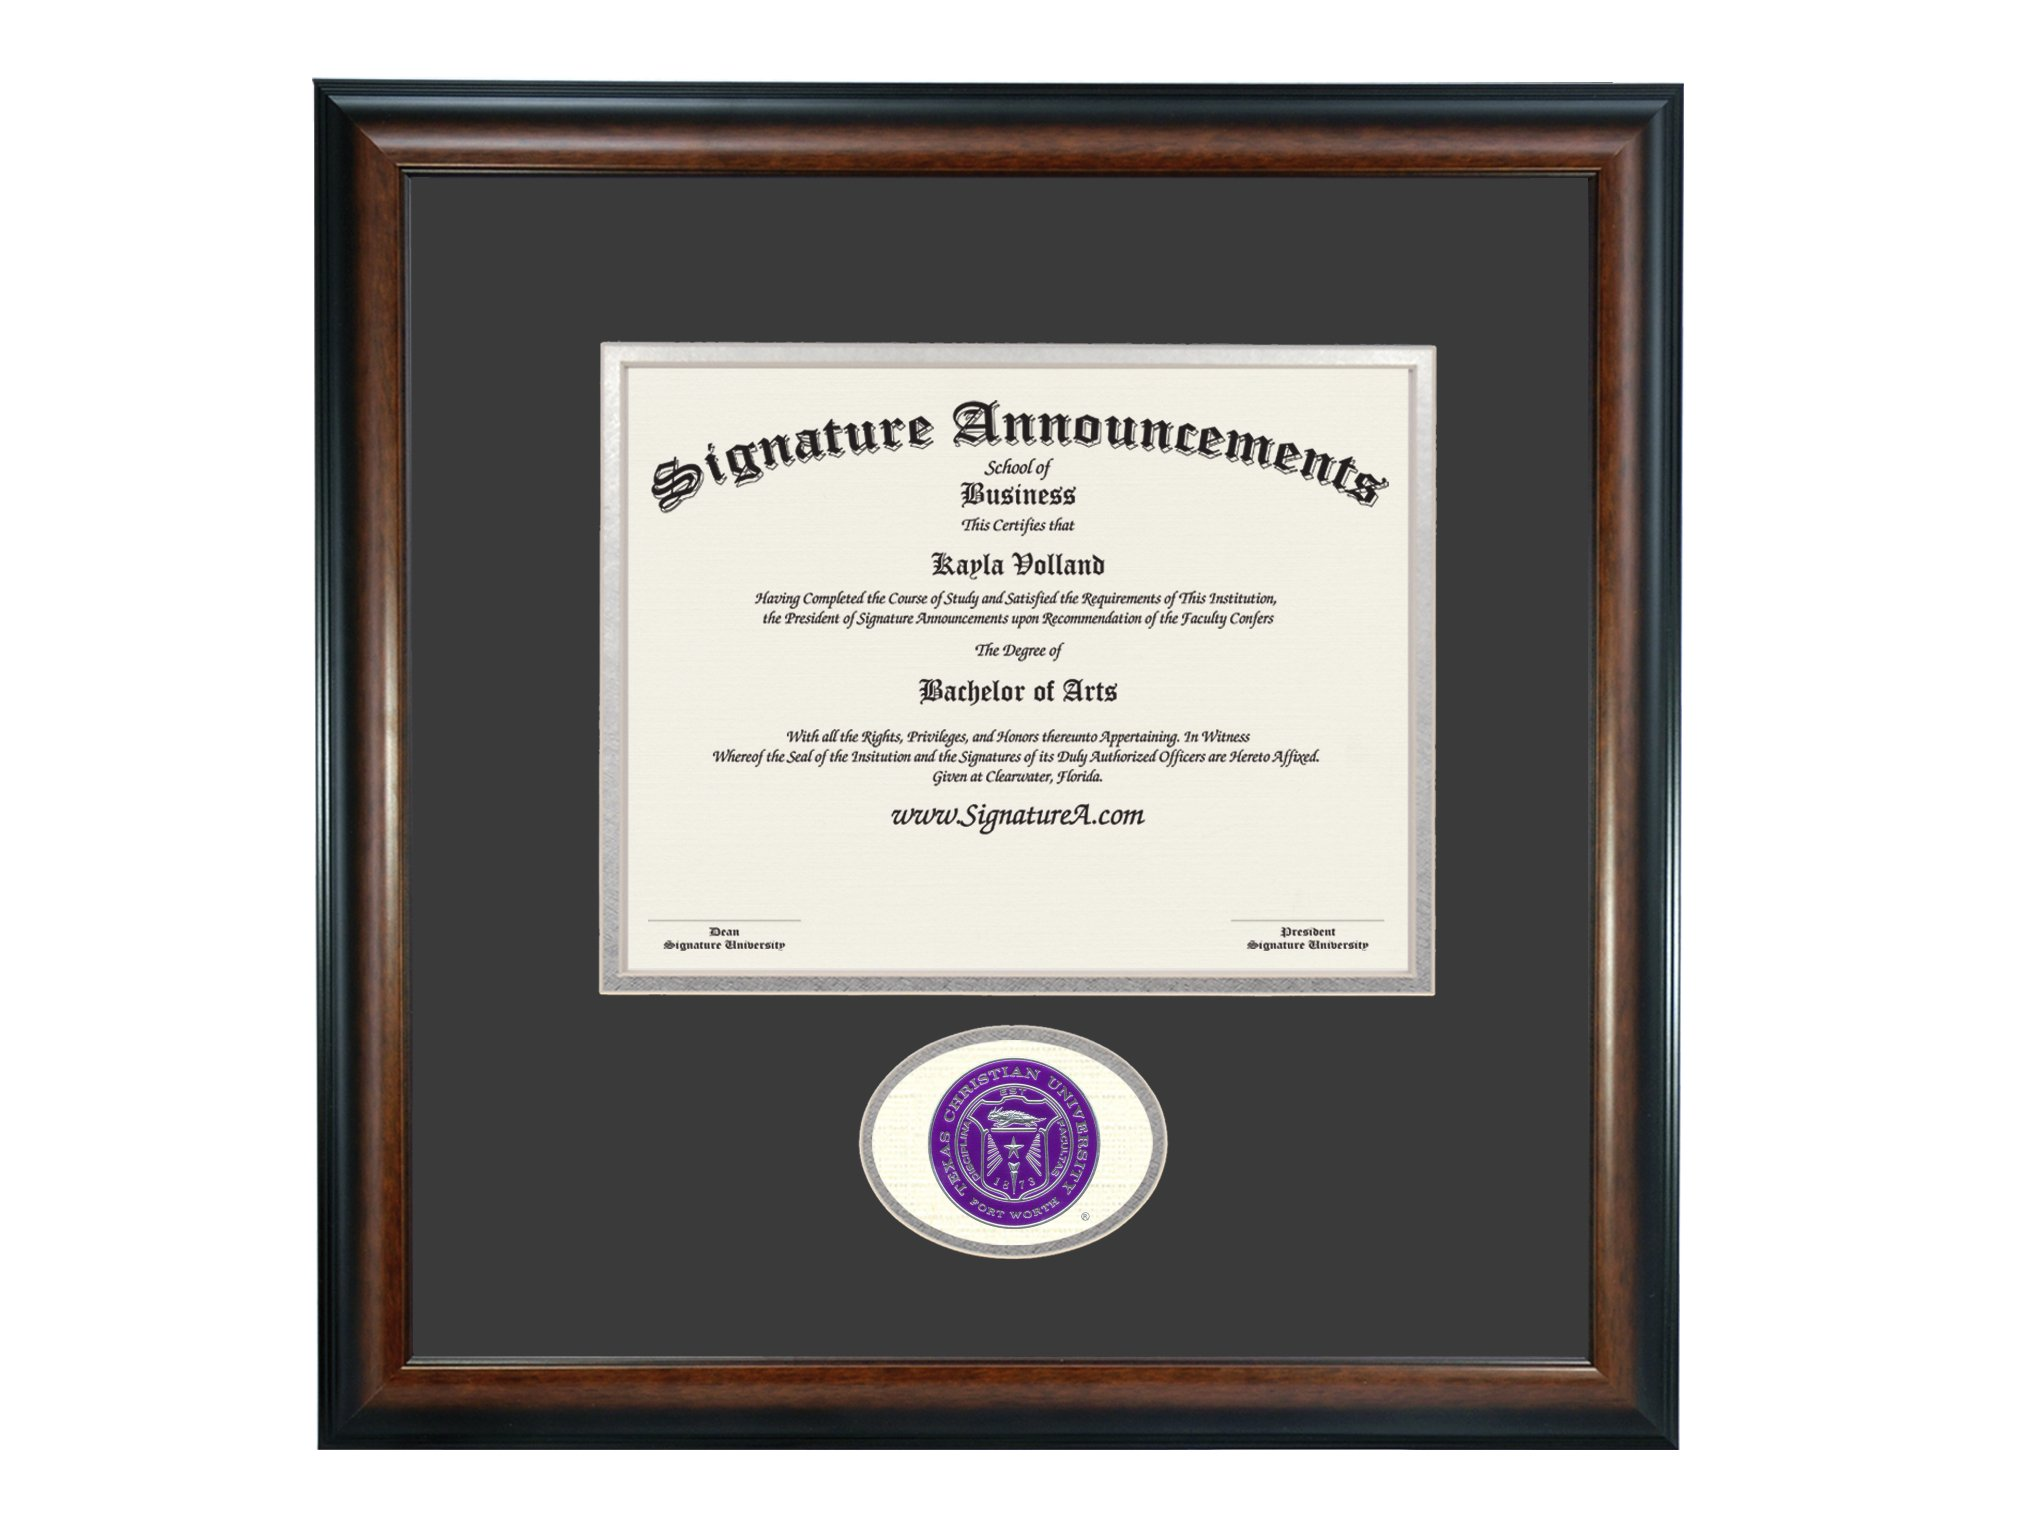 Signature Announcements Texas Christian University (TCU) Undergraduate and Graduate/Professional/Doctor Graduation Diploma Frame with Sculpted Foil Seal (Matte Mahogany, 16 x 16) by Signature Announcements